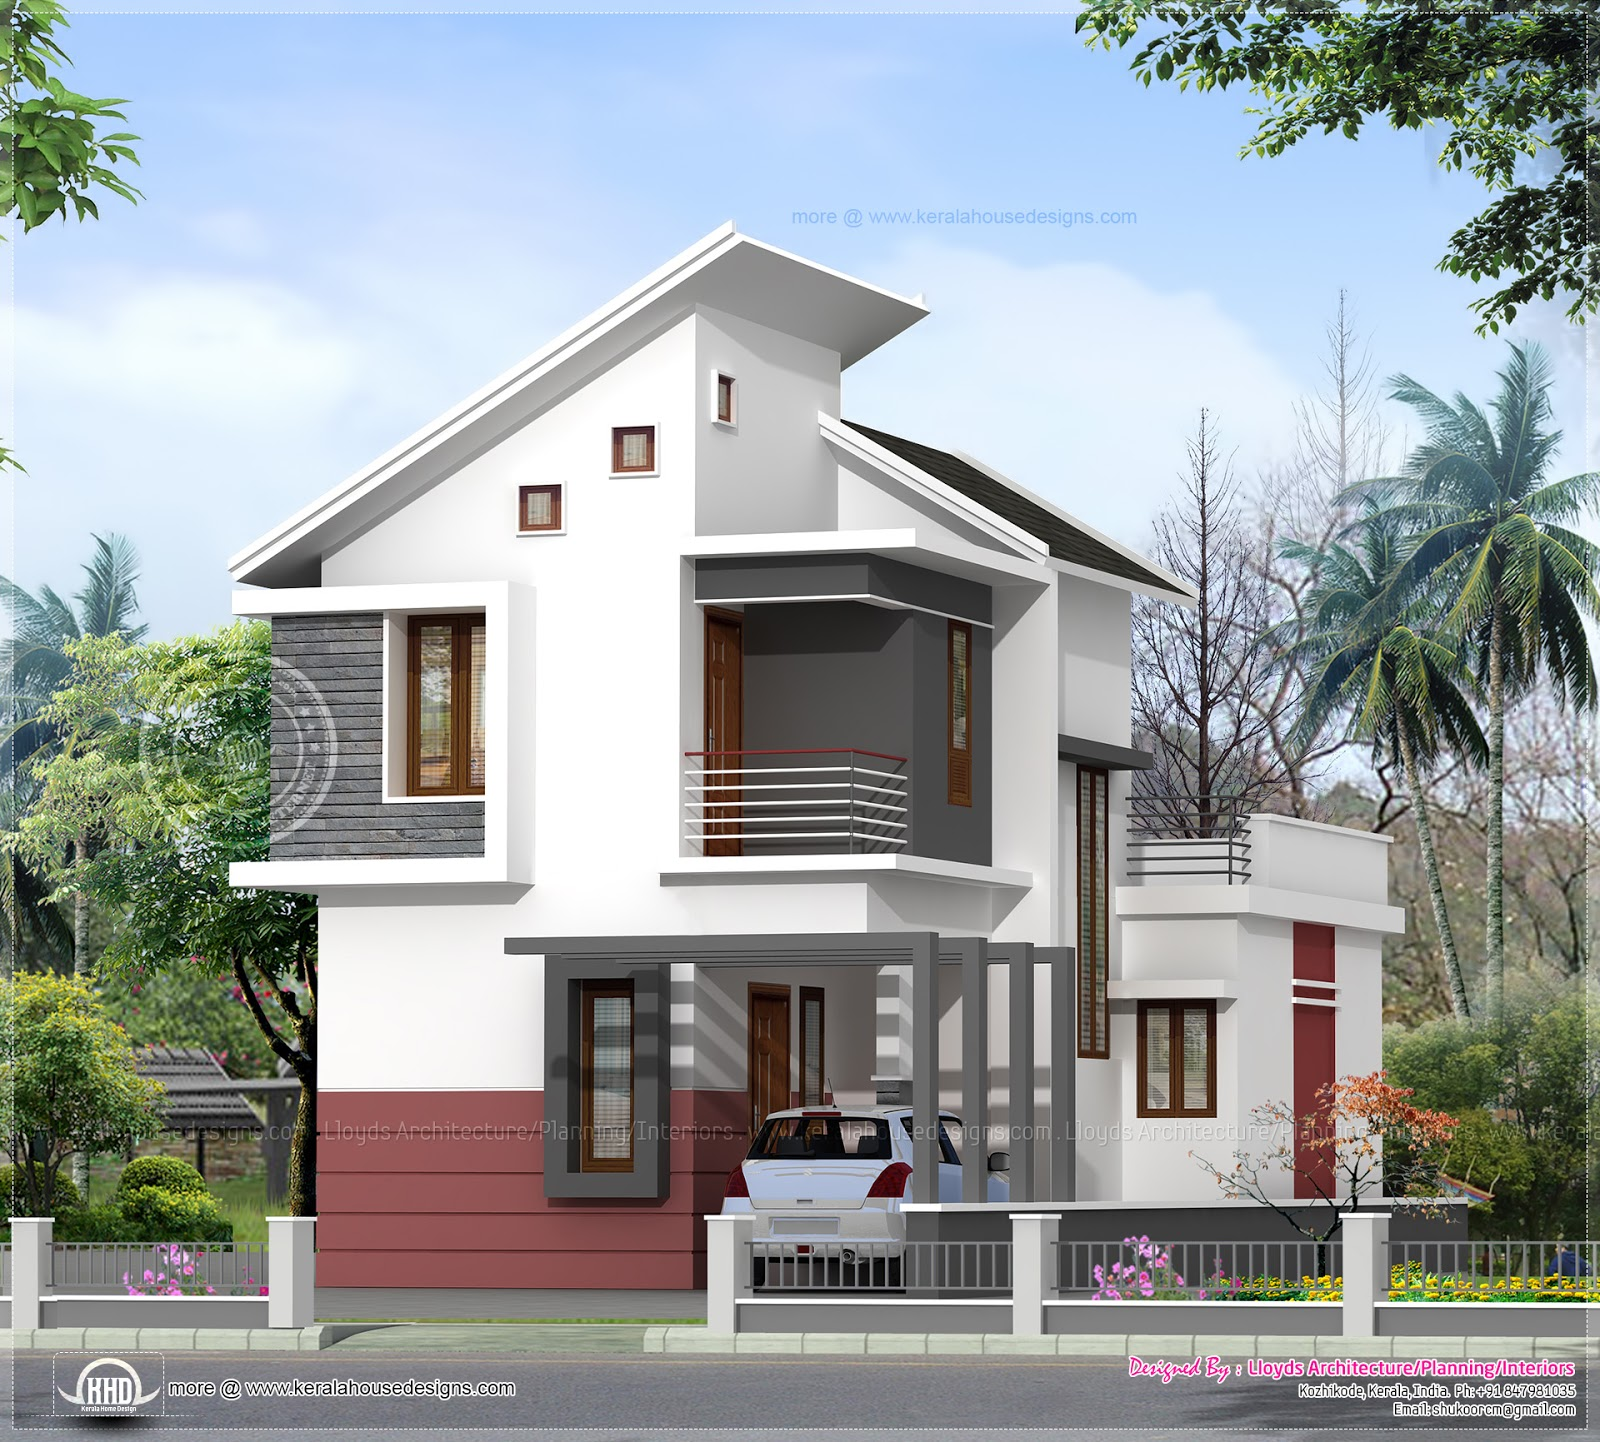 1197 sq ft 3 bedroom villa in 3 cents plot kerala home for Home architecture design kerala